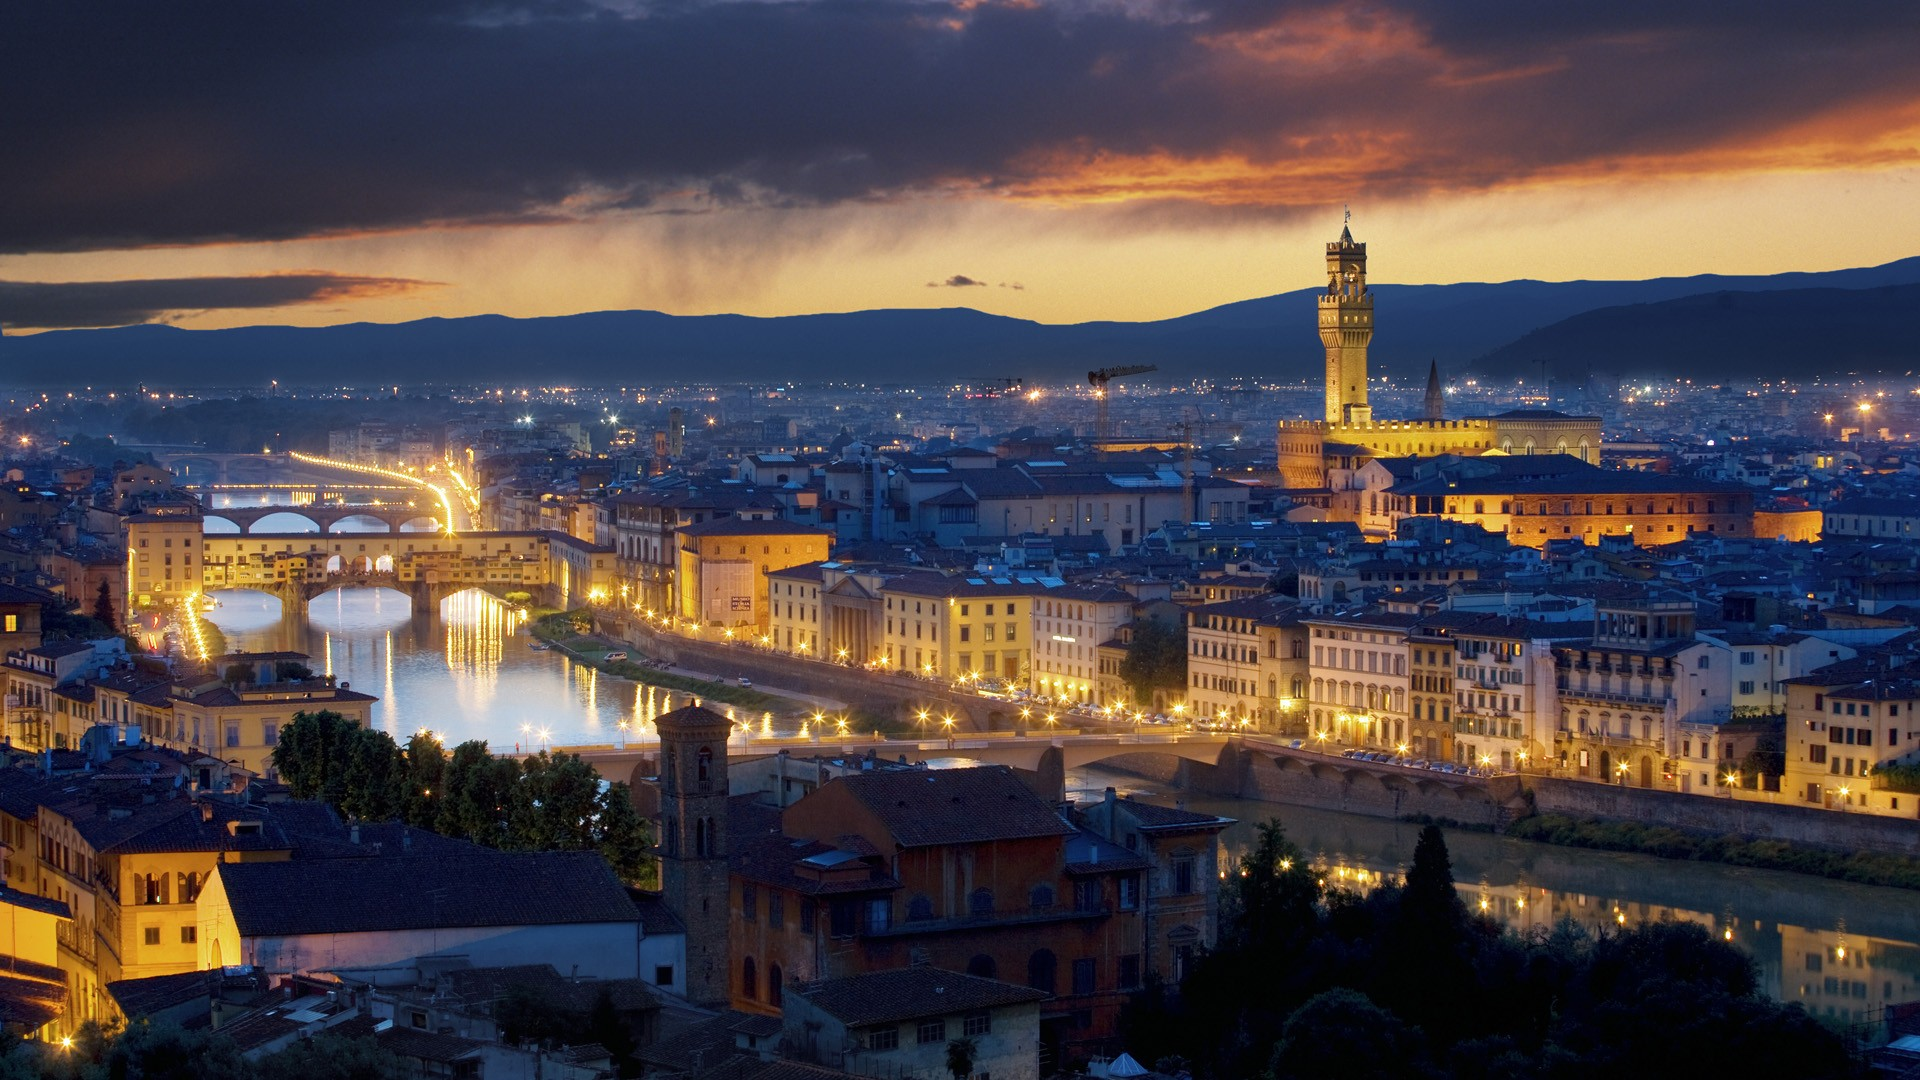 Download Cityscapes Italy Wallpaper 1920x1080 Wallpoper 1920x1080